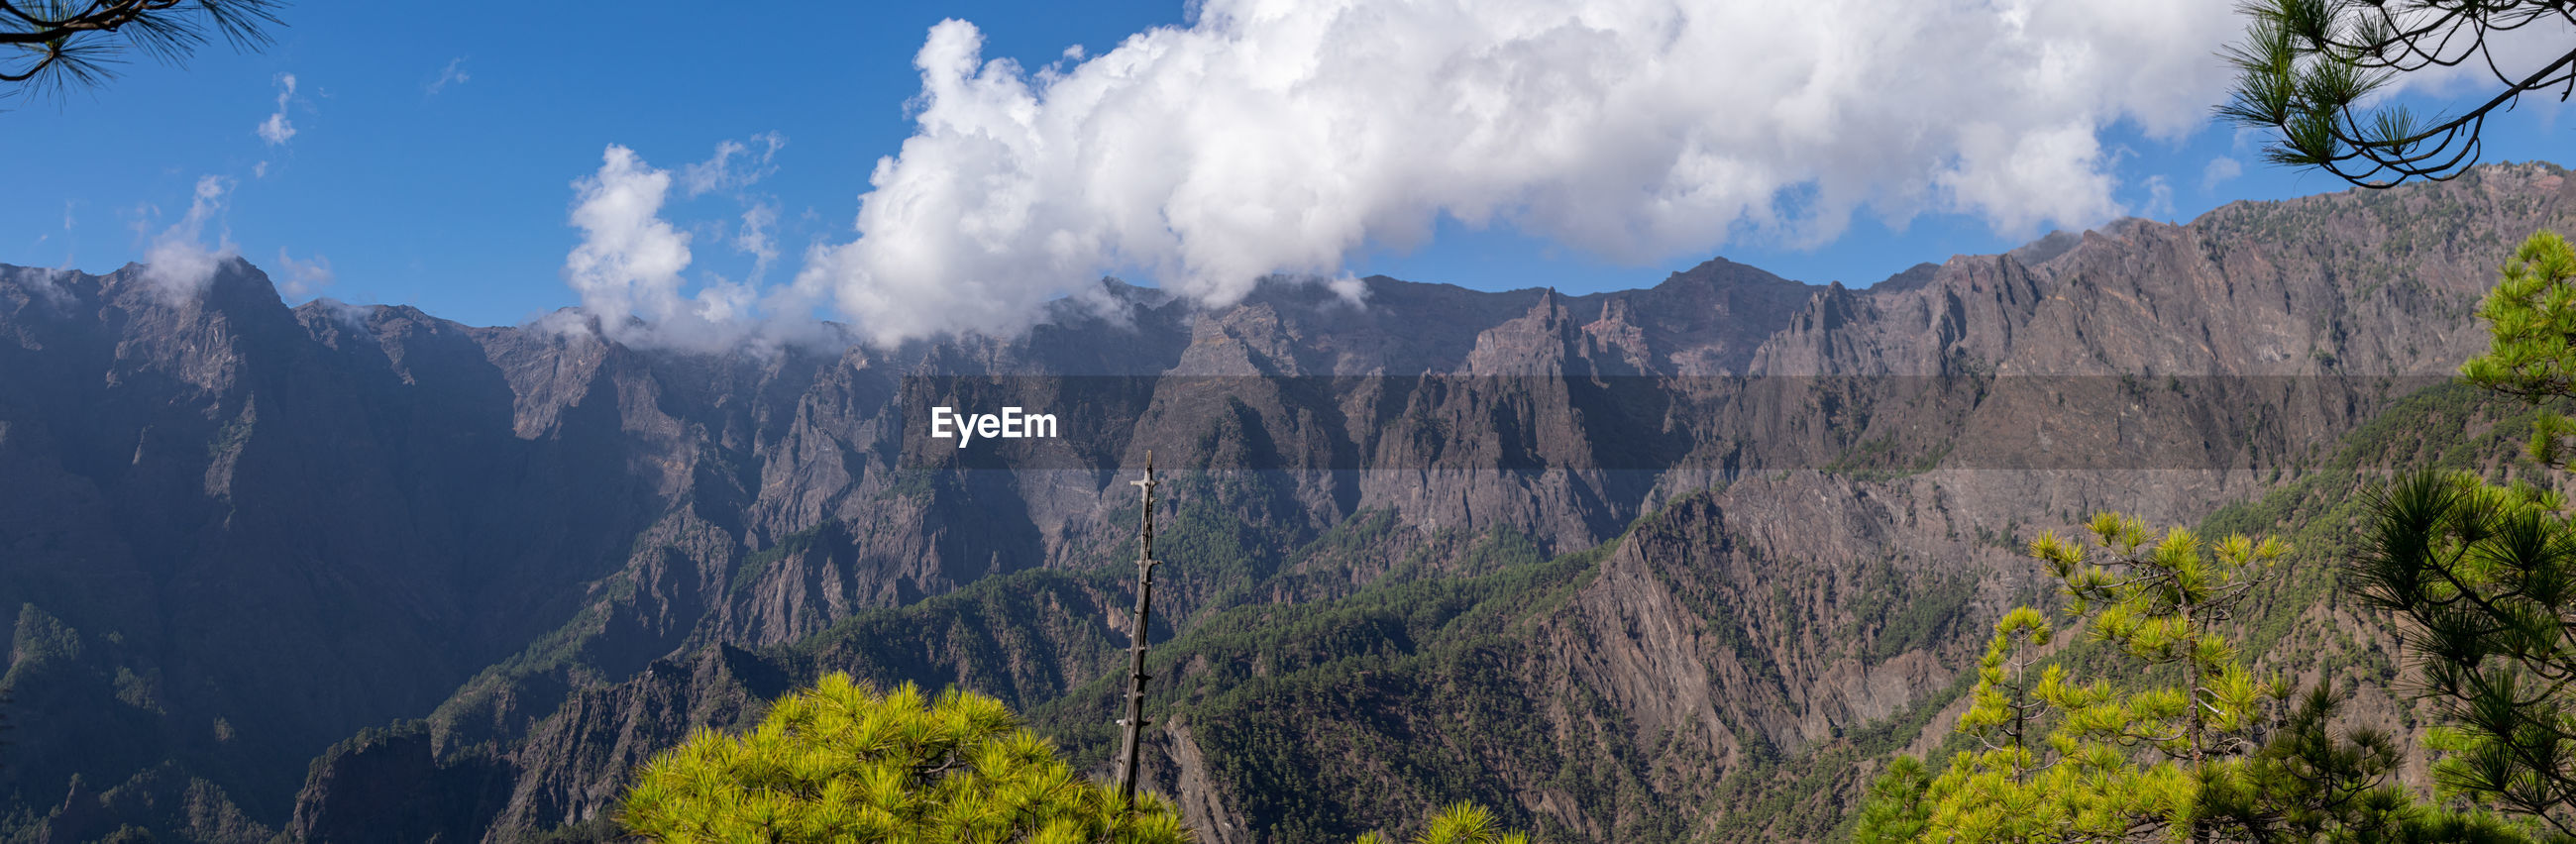 Volcanic landscape pine forest at astronomy viewpoint llanos del jable, la palma, canaries, spain